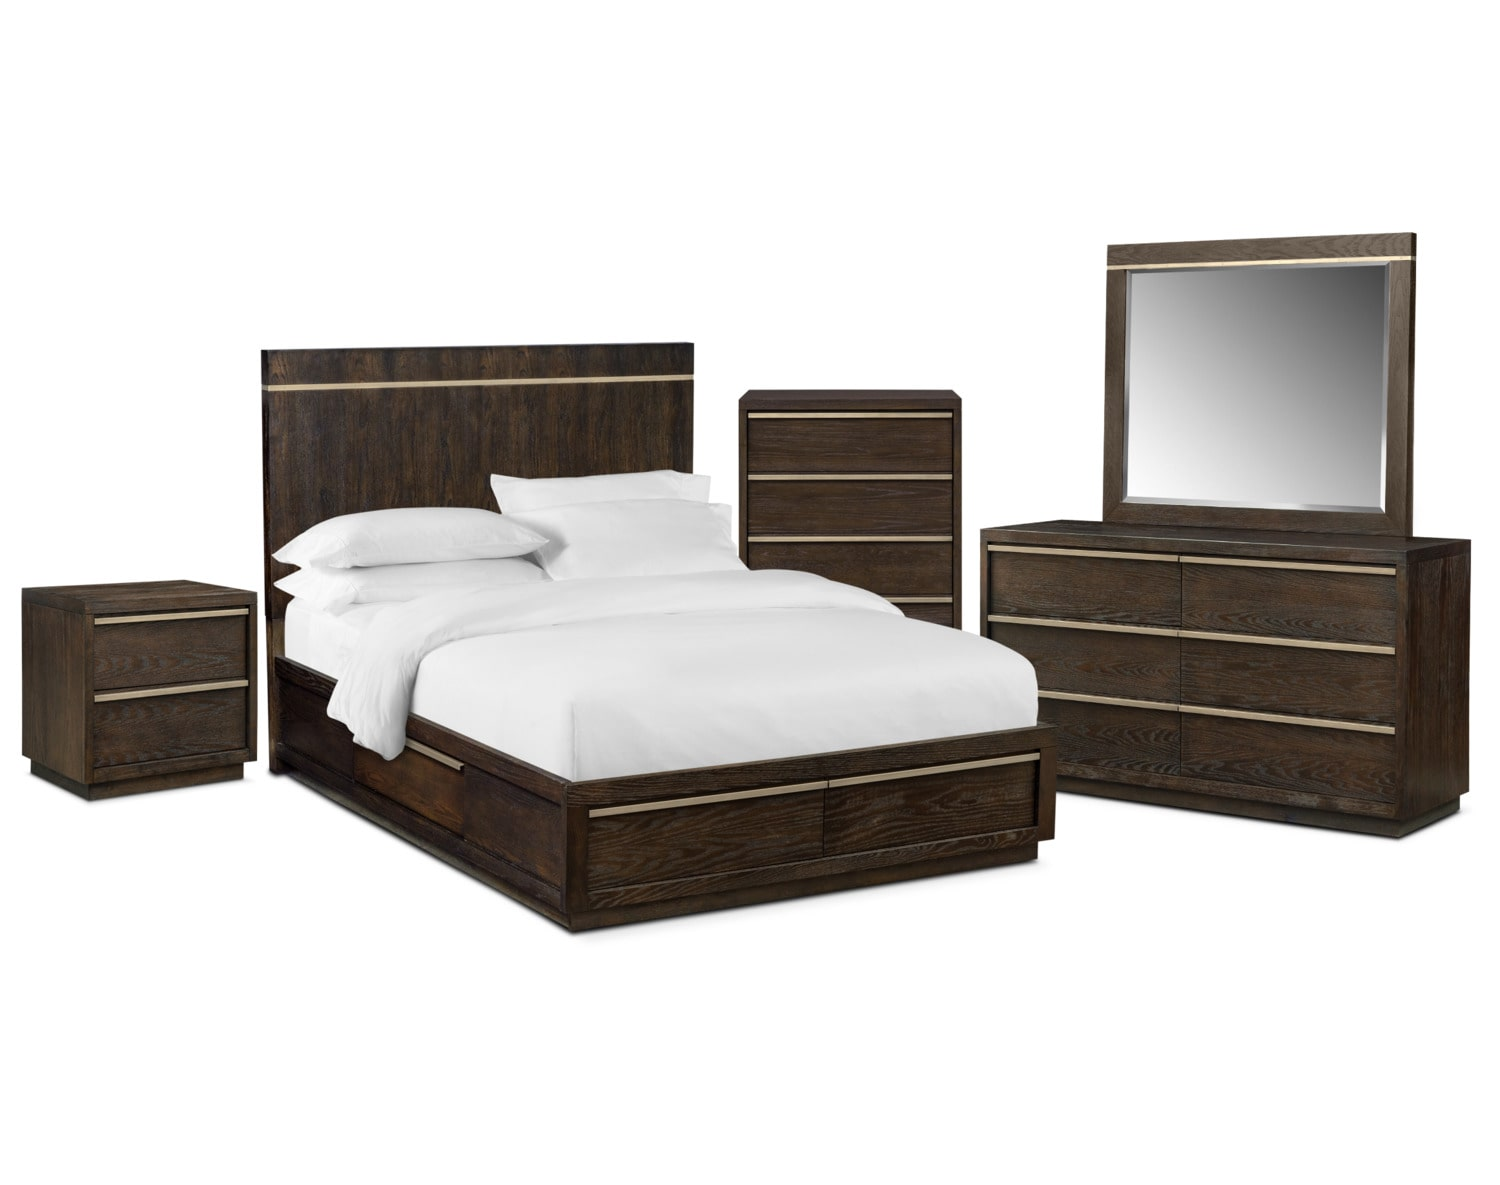 The Gavin Storage Bedroom Collection - Brownstone